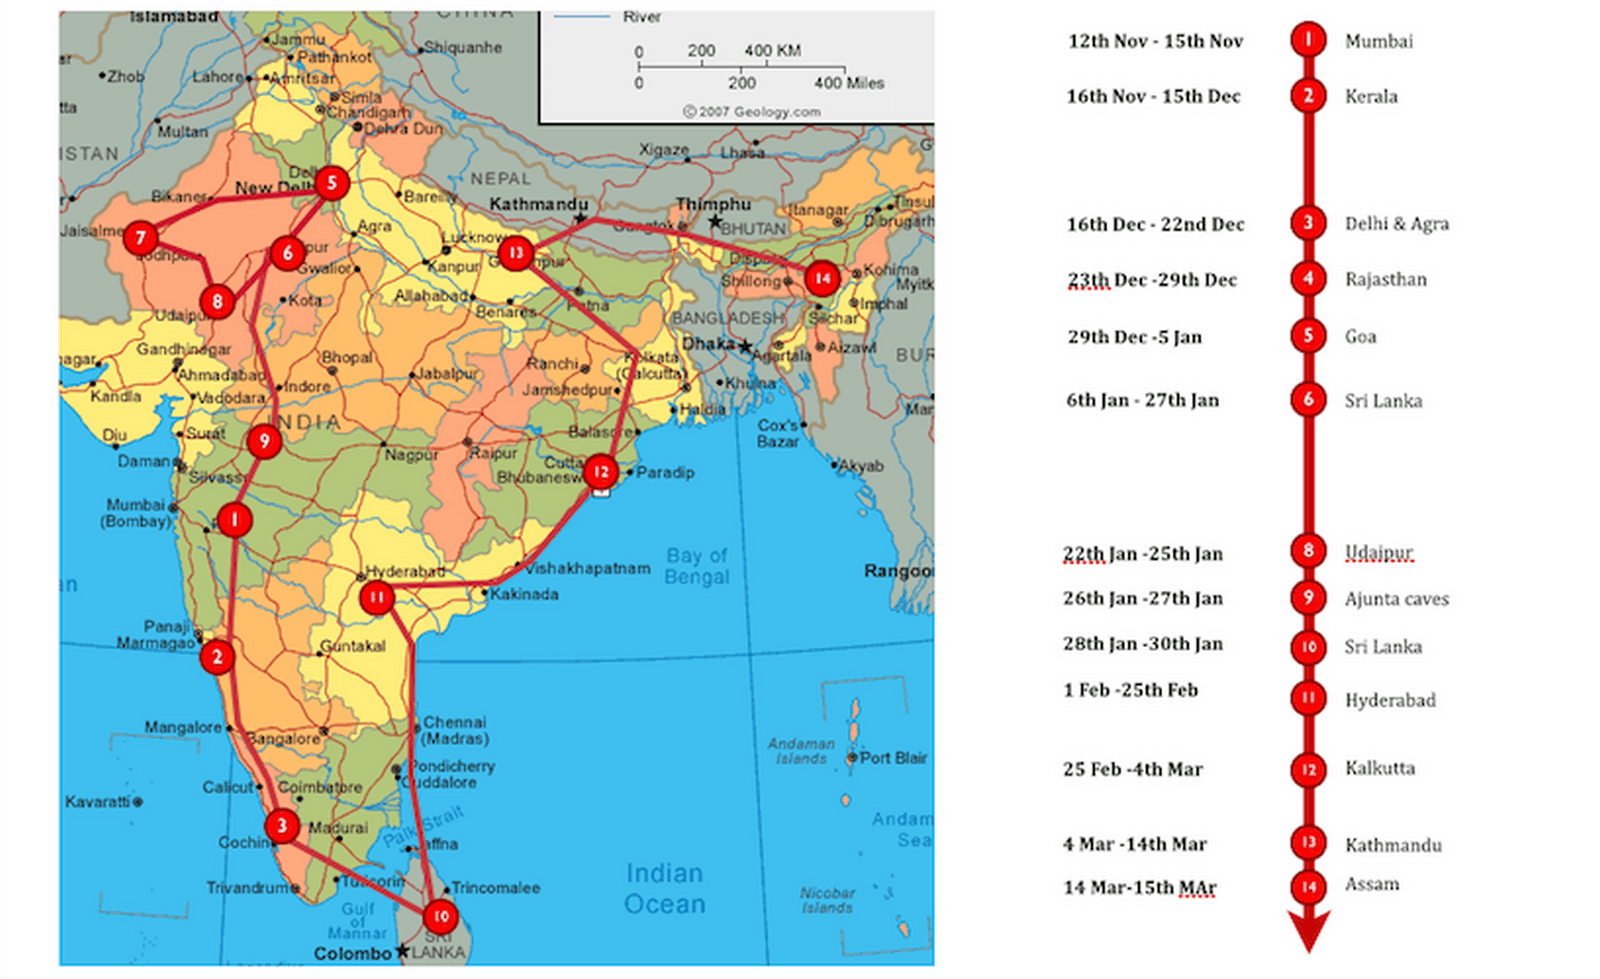 Itinerary planning India